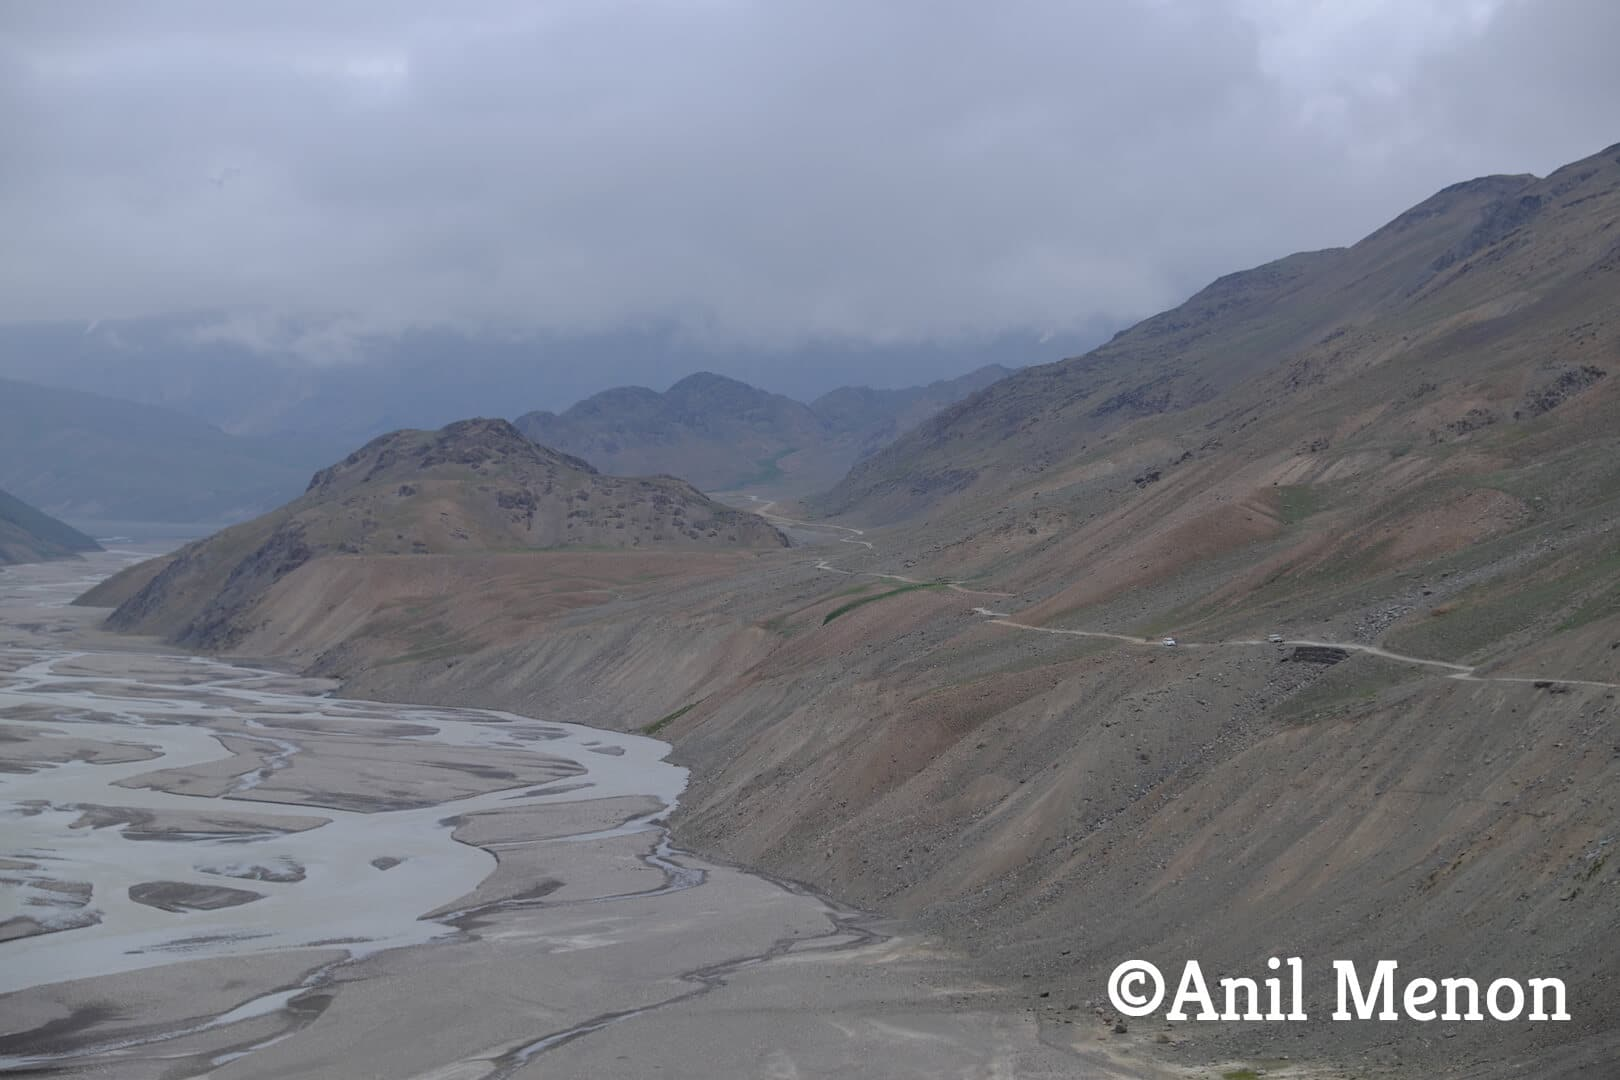 Mountainous range alongside the river in Spiti, India